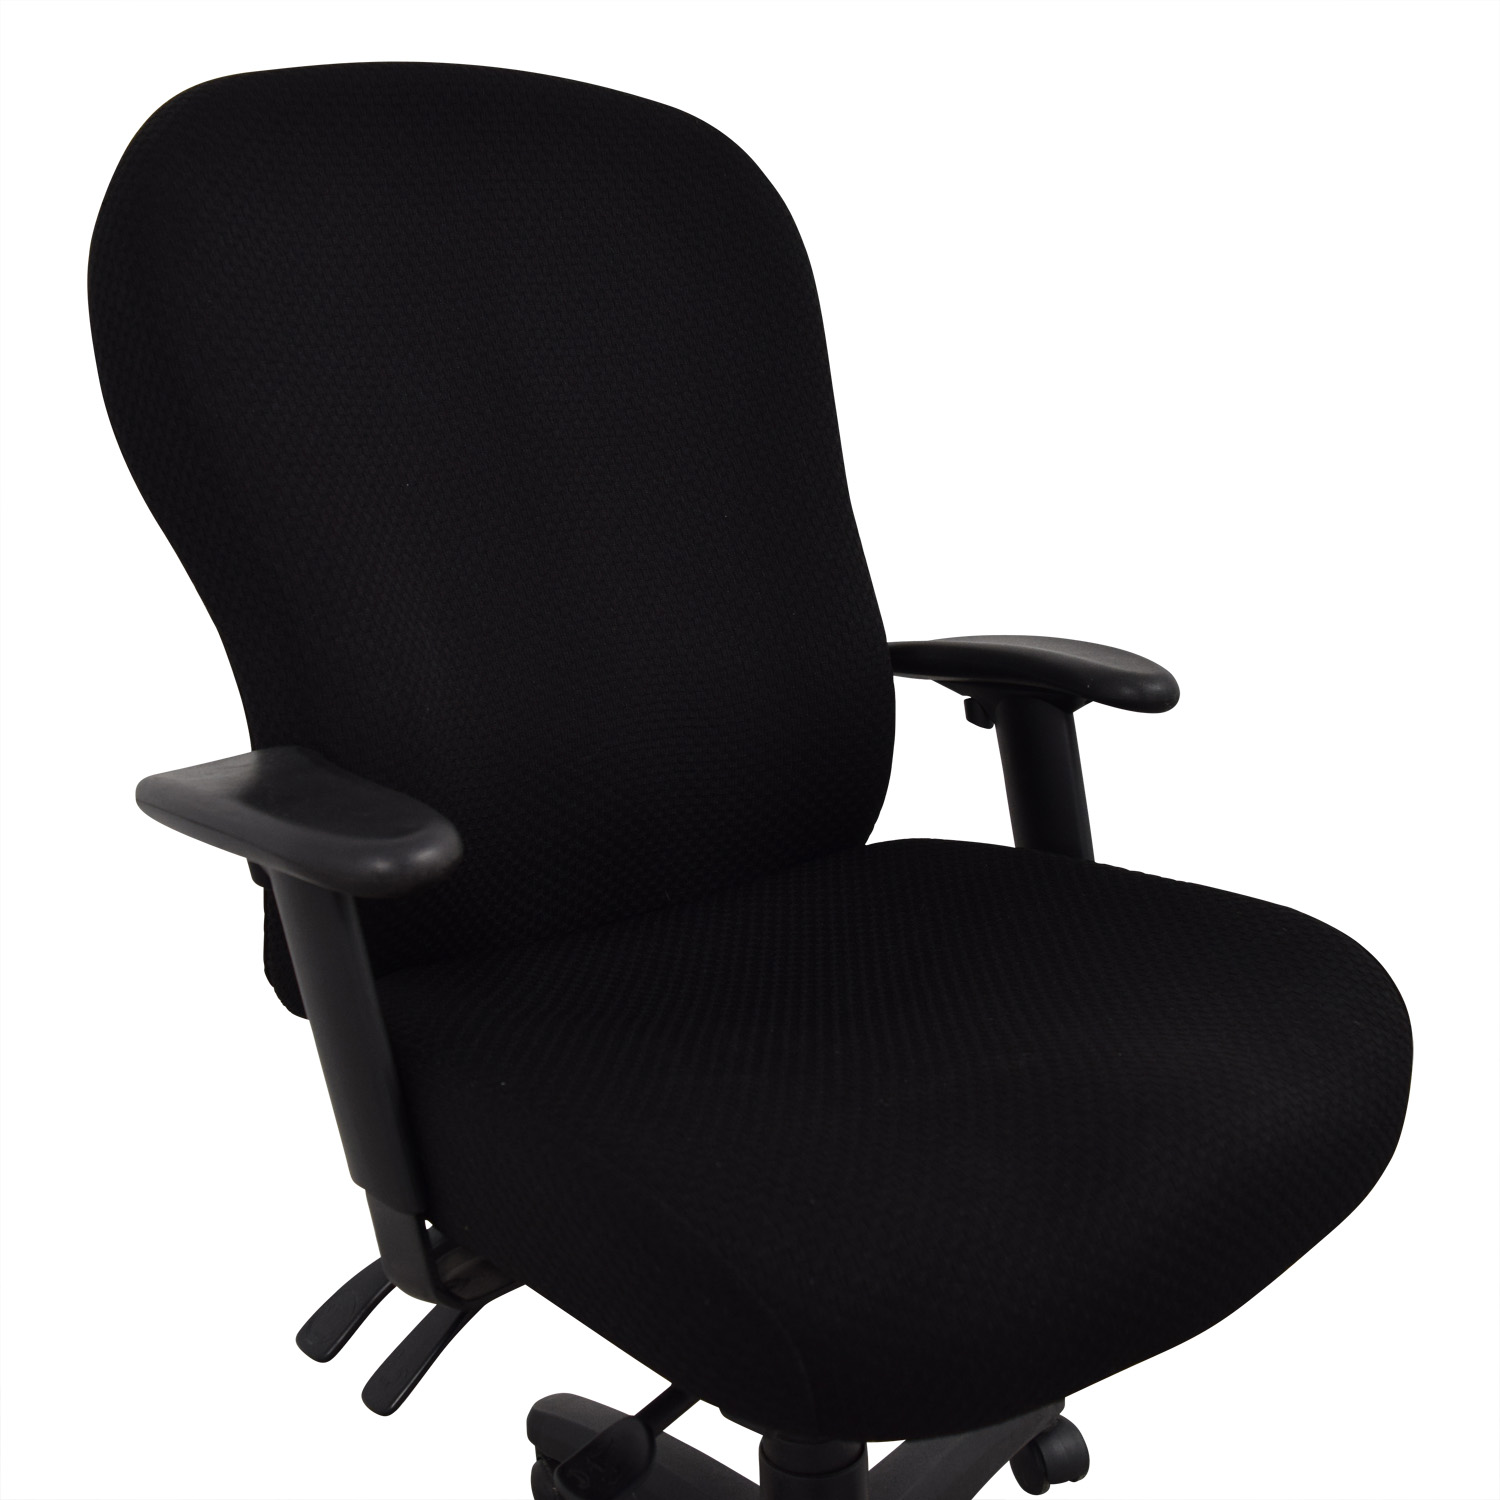 46% off - tempur pedic tempur pedic desk chair / chairs